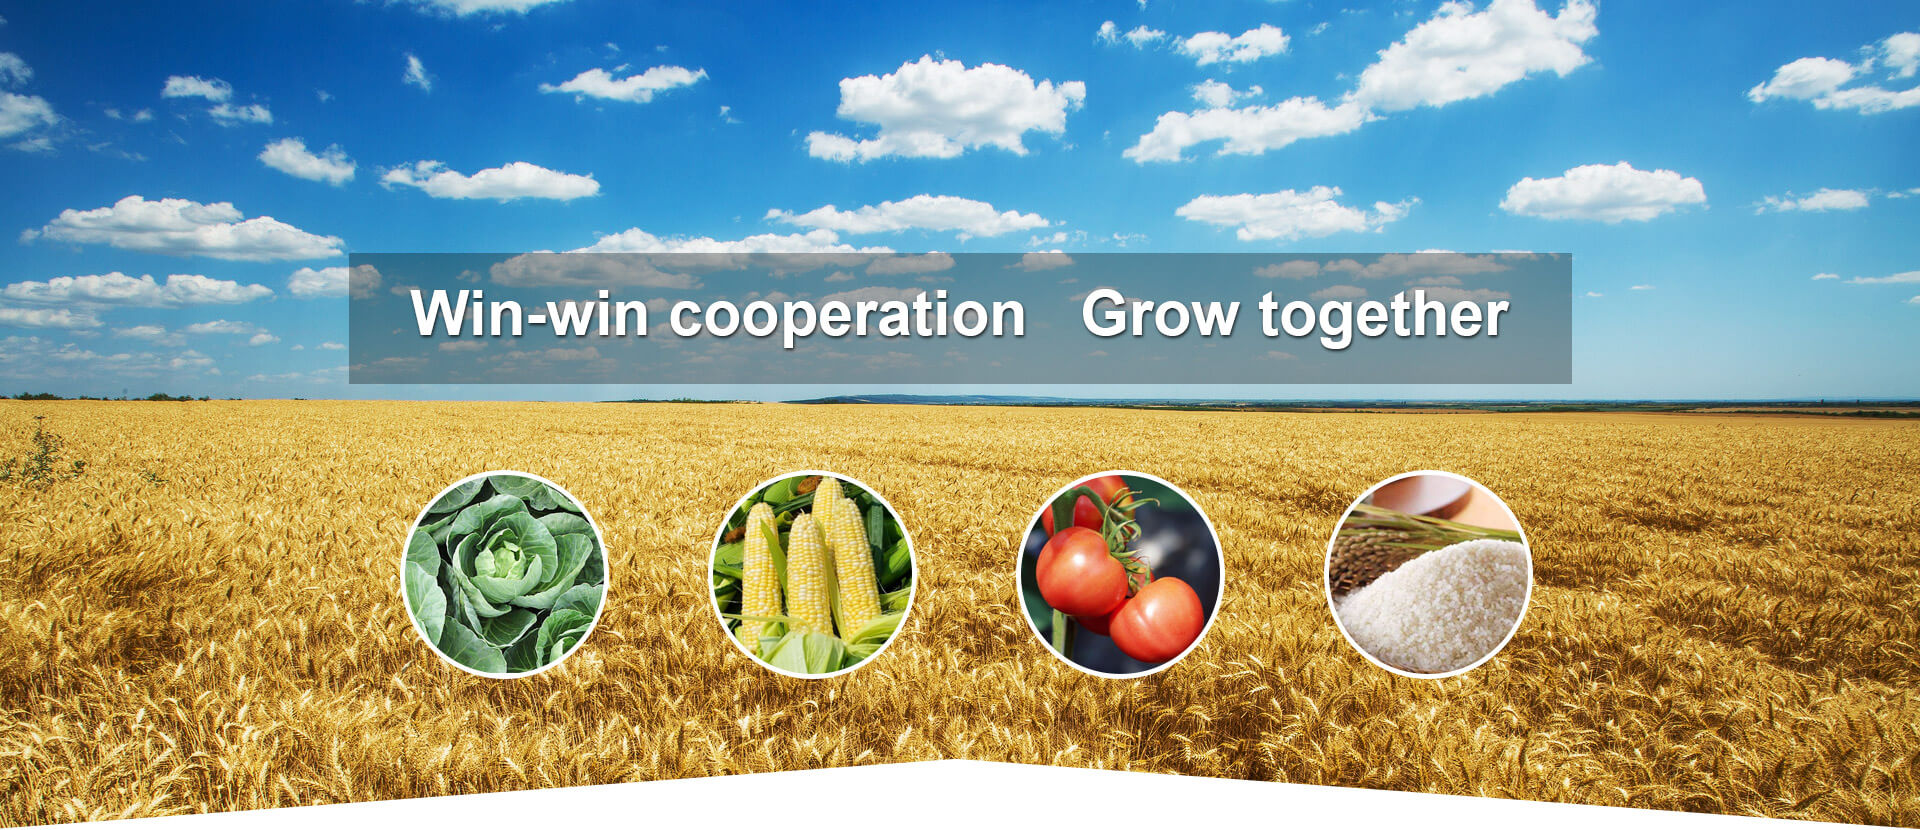 Win-win cooperation Grow together